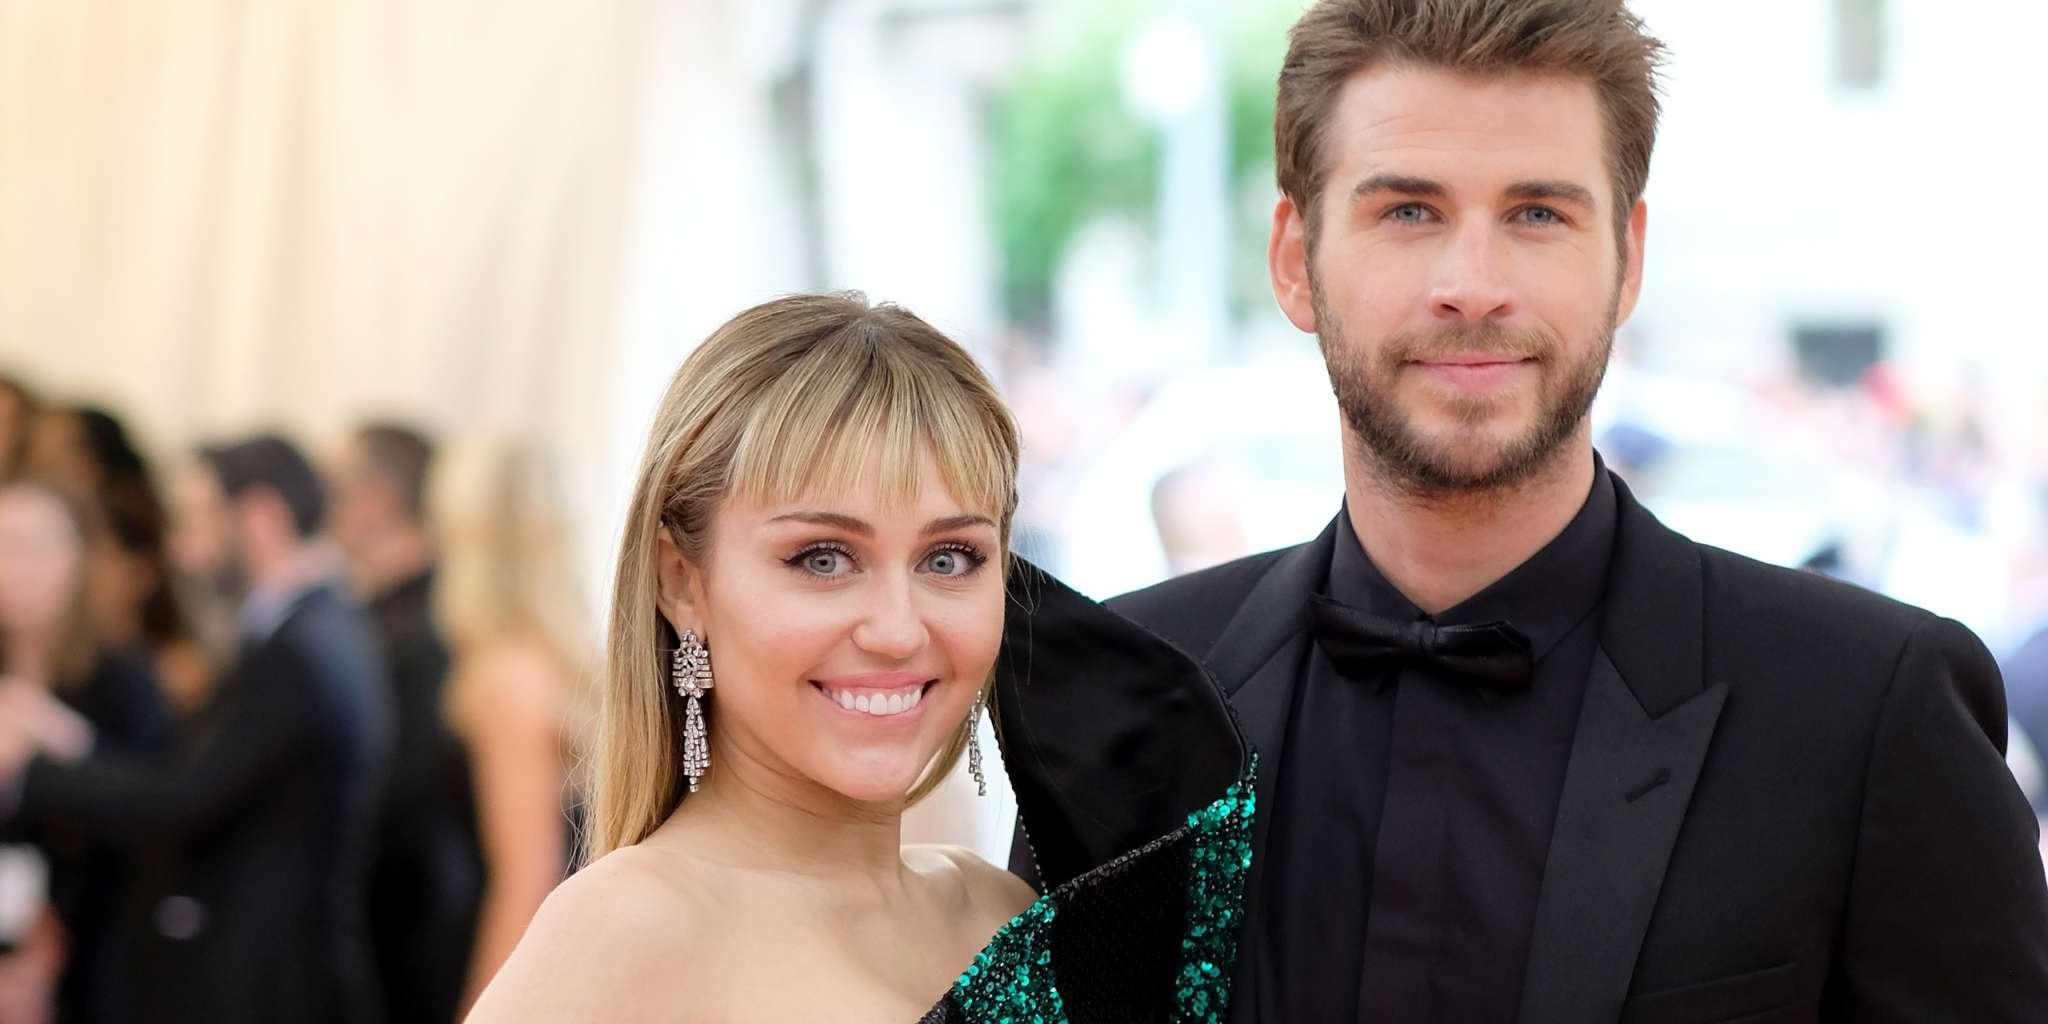 Liam Hemsworth Misses Miley Cyrus A Lot, Source Says - He'll 'Always Love' Her!